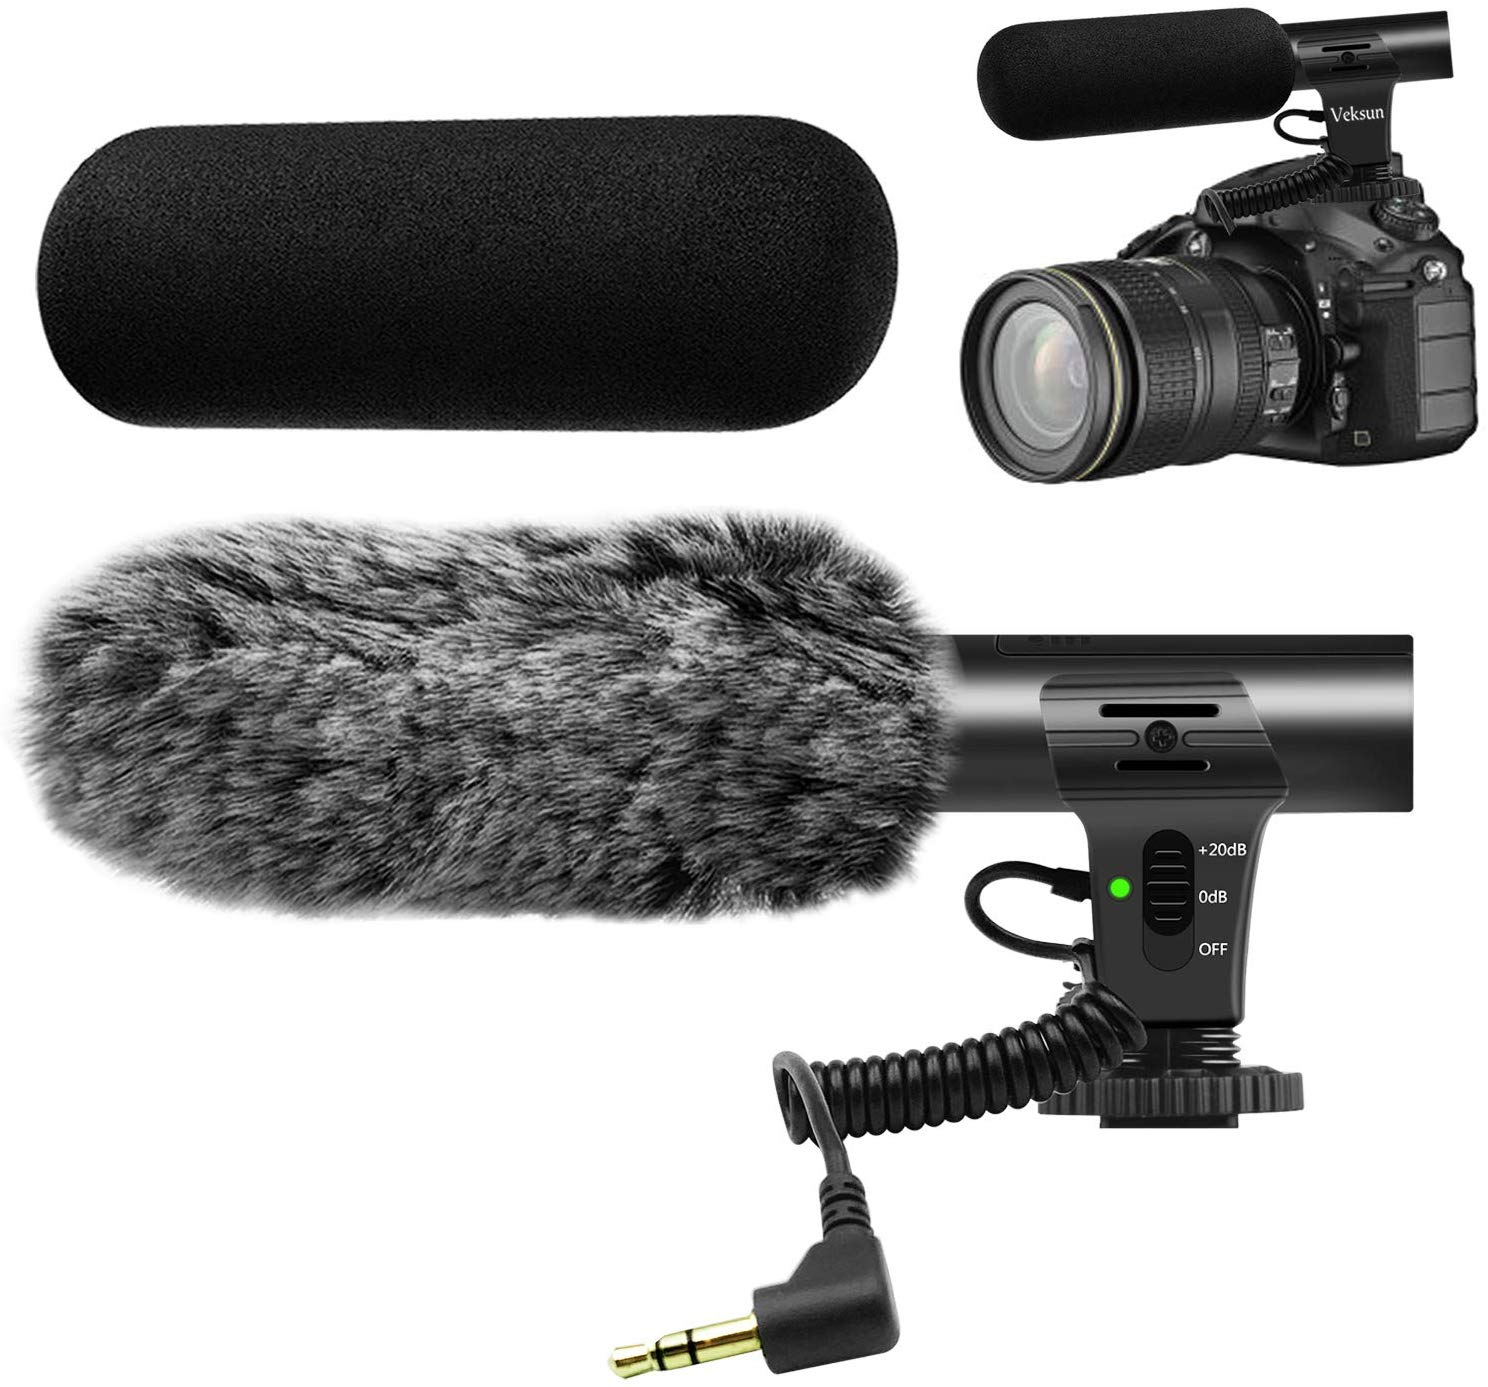 Camera Microphone,Veksun Video Microphone for Dslr Interview Videomic Shotgun Microphones